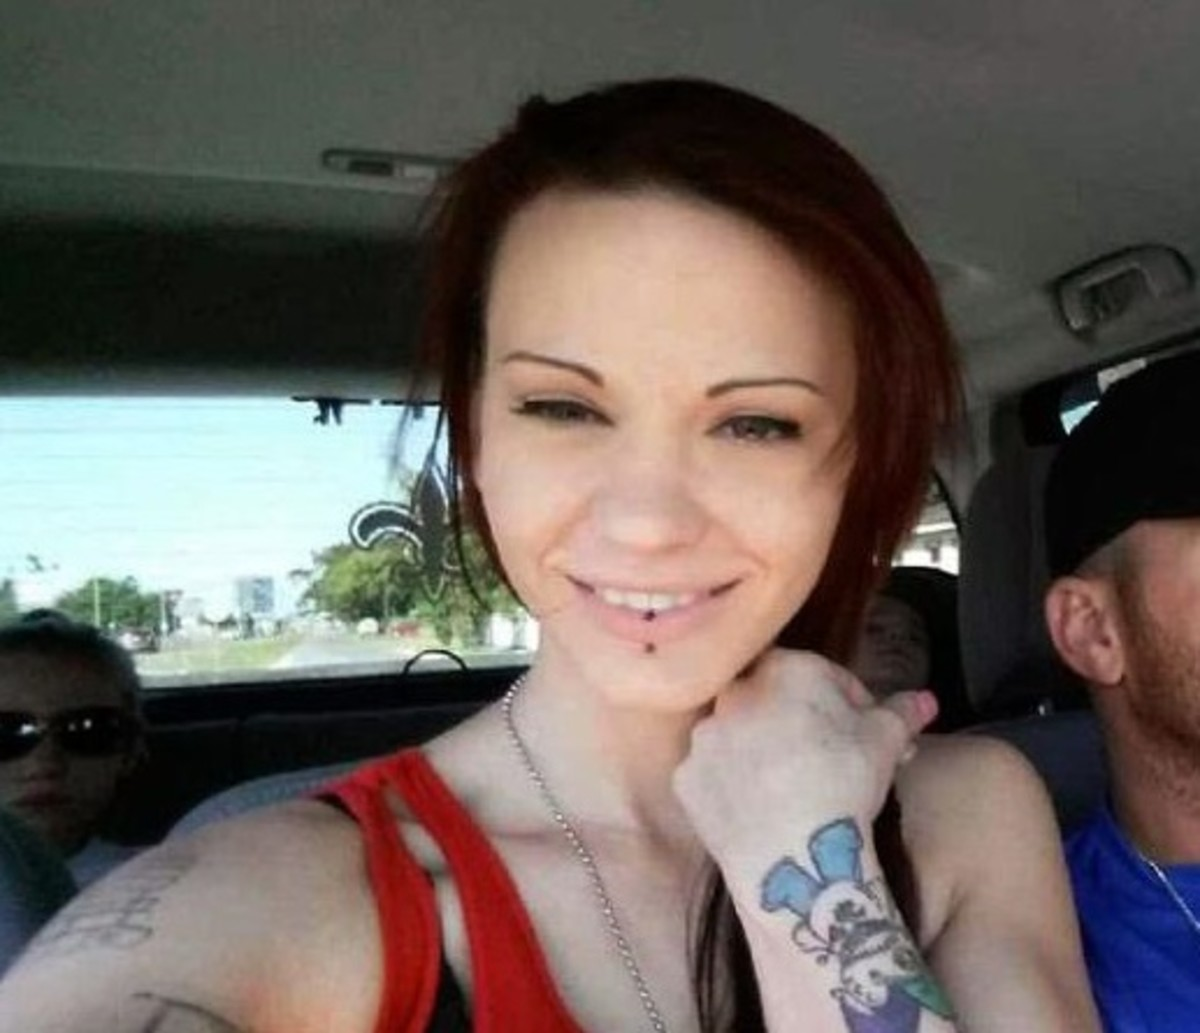 Stripper Accused Of Having Sex With A Minor And A Dog